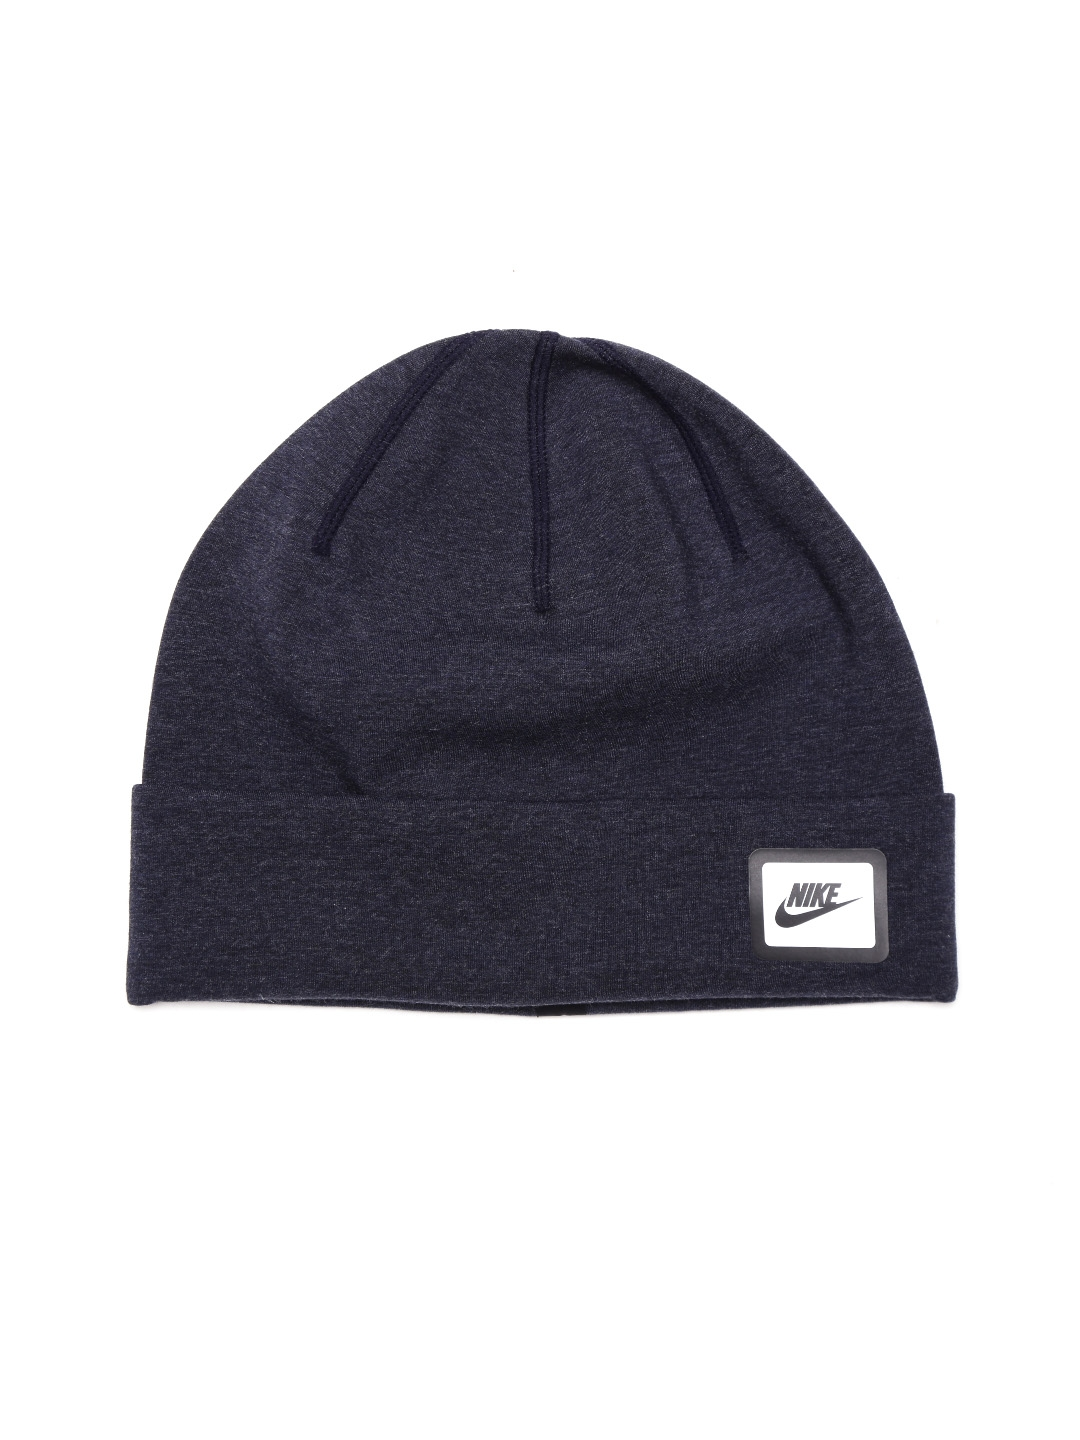 8d2001a63d7bd Buy Nike Unisex Set Of 3 Navy NSW Tech Beanies - Caps for Unisex ...